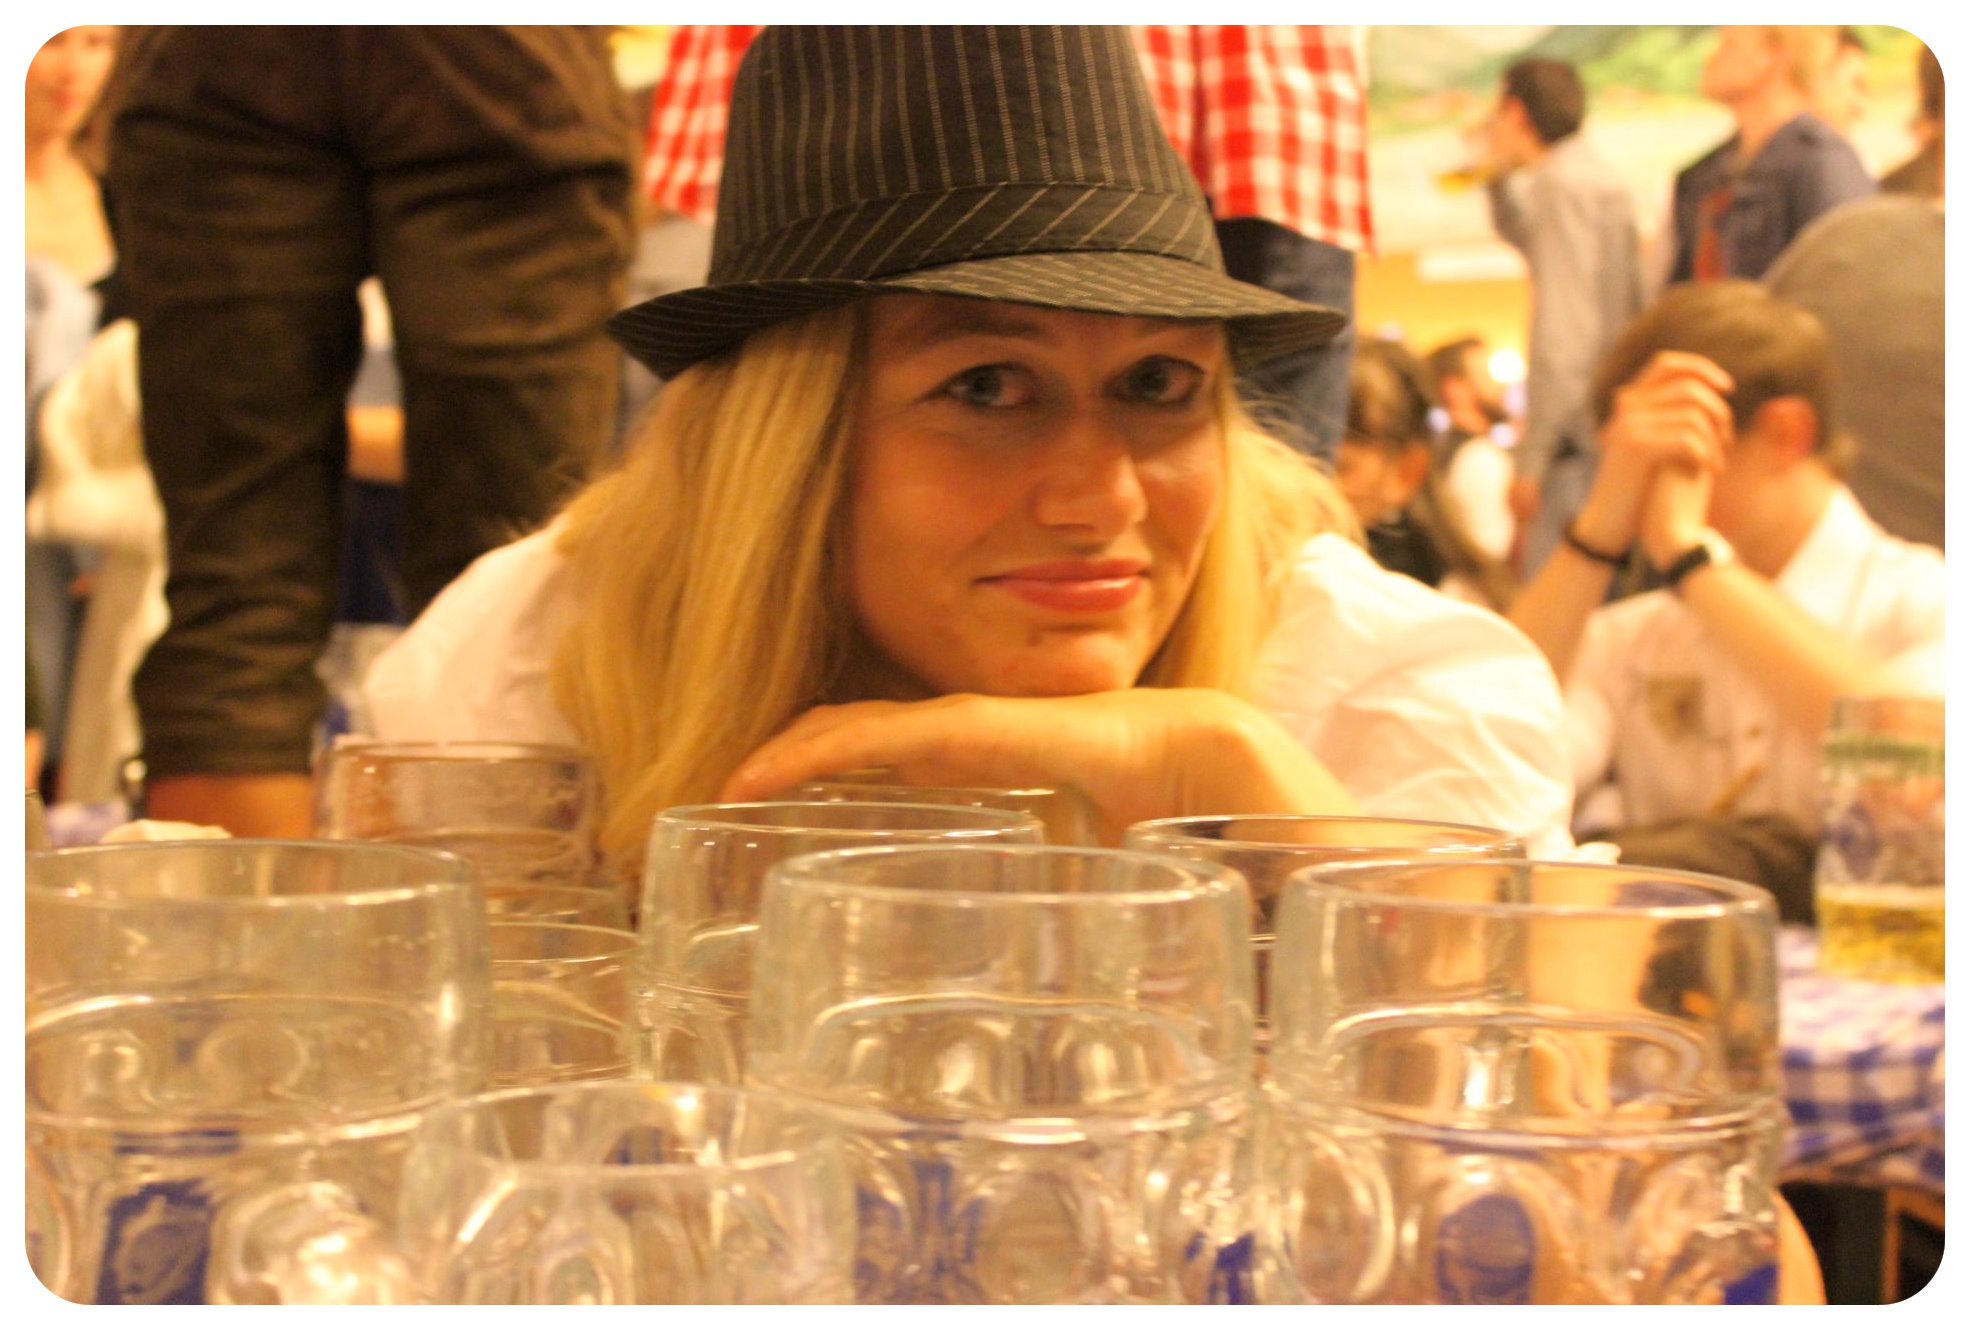 dani with empty glasses